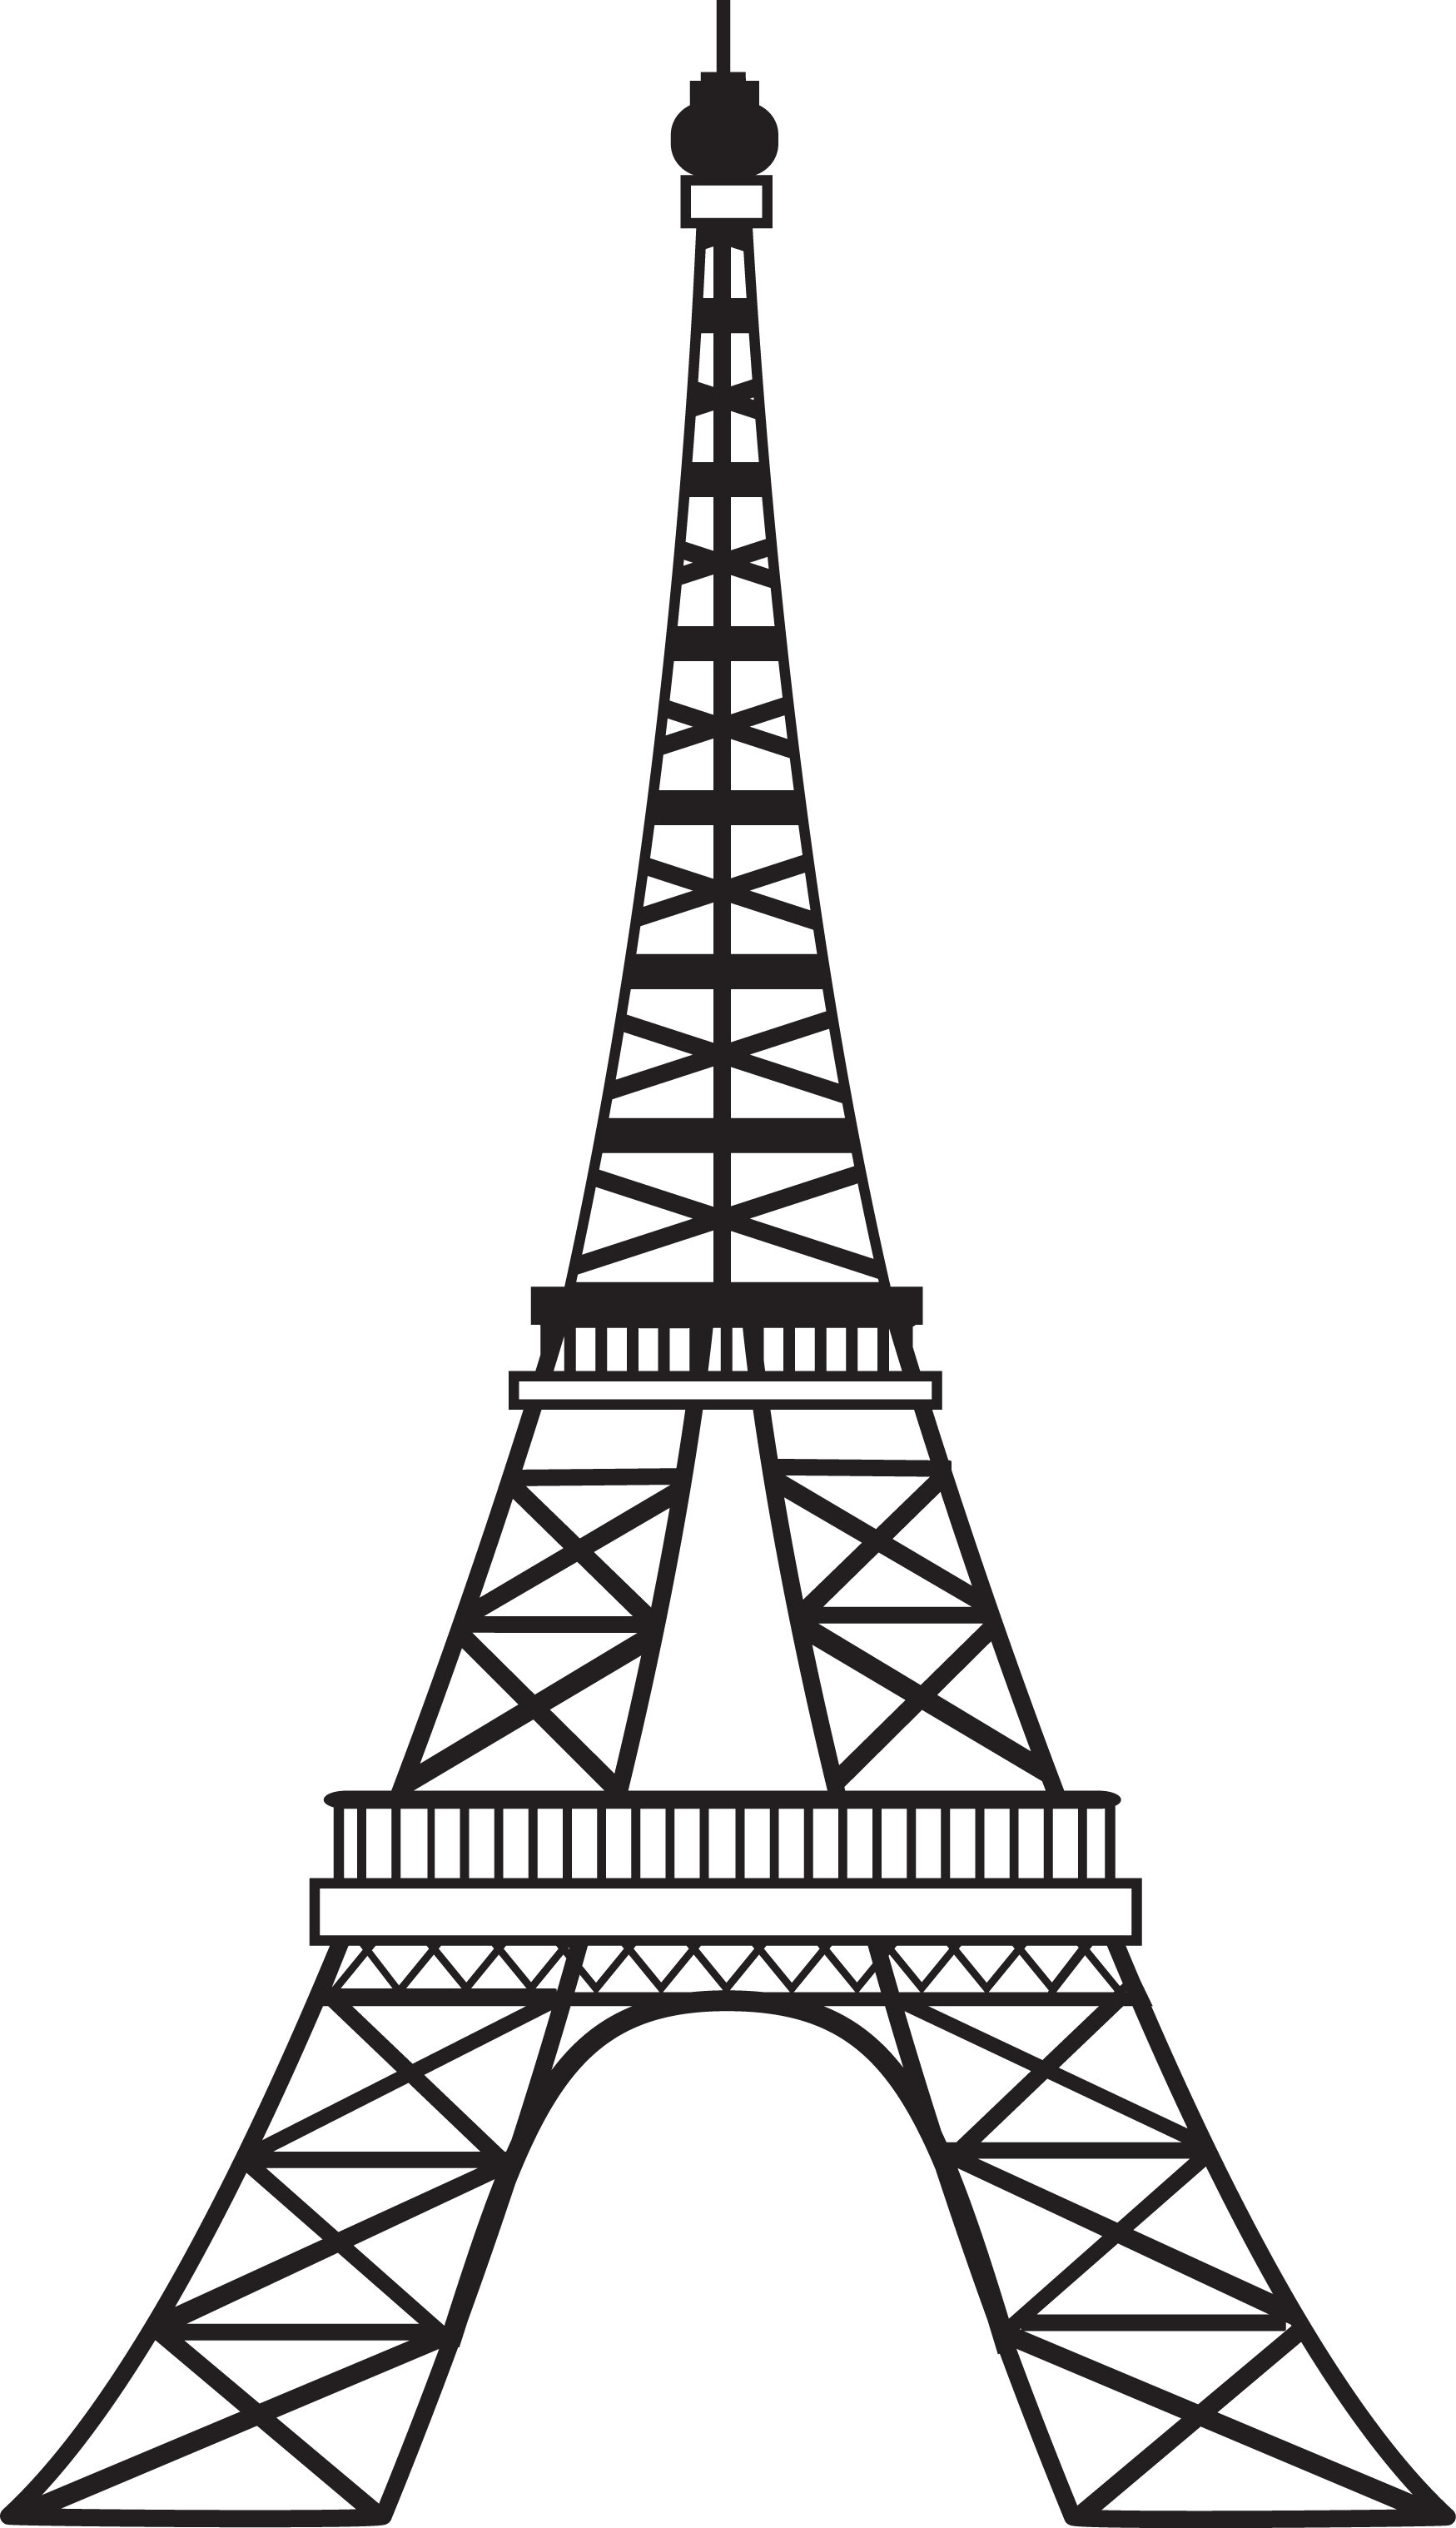 eiffel tower silhouette clever eiffel tower silhouette thecheapjerseys Choice Image